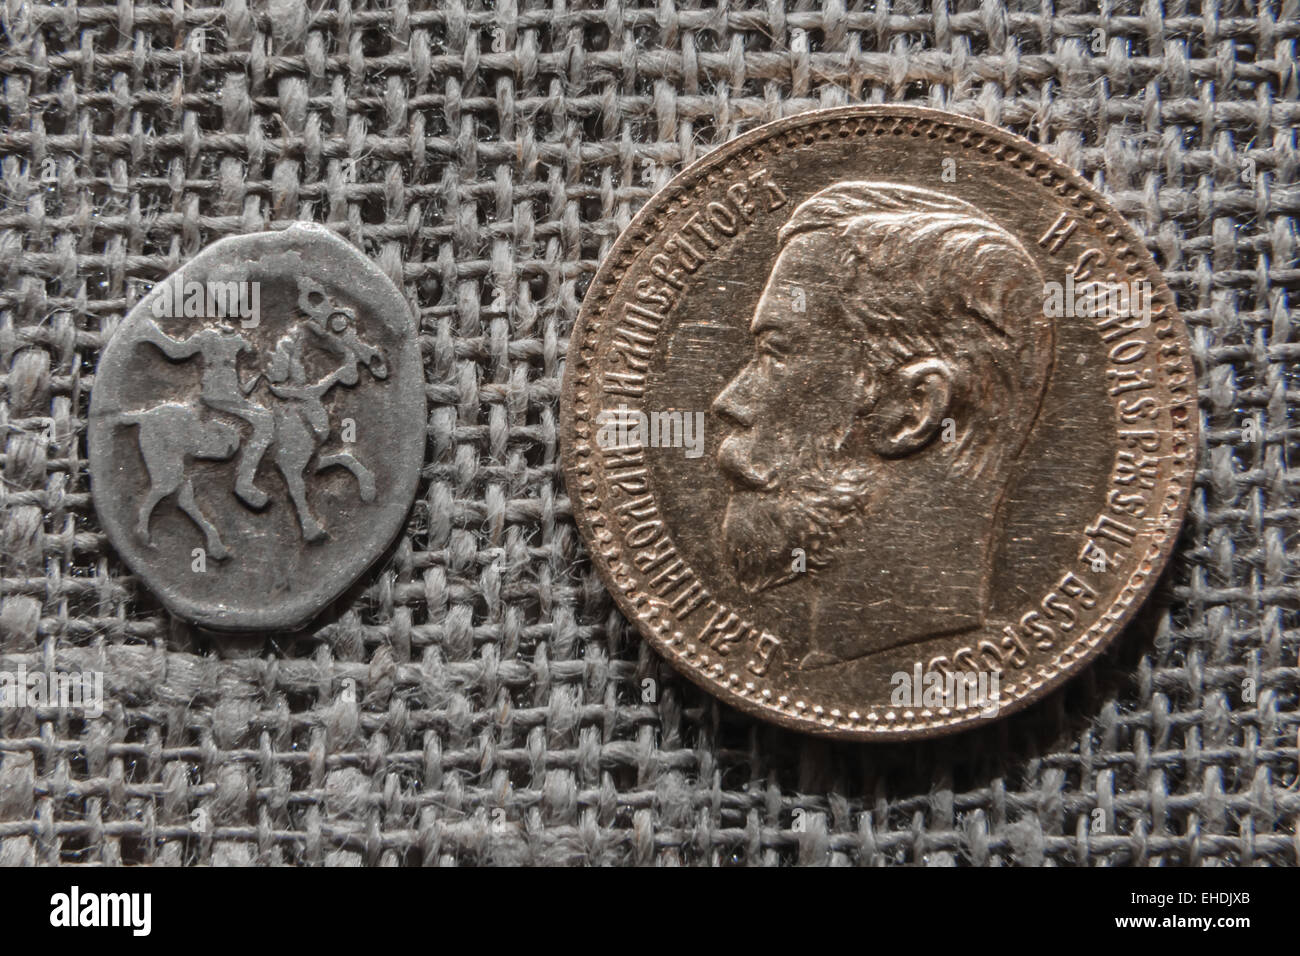 Evolution of the Russian money - silver Moscow kopek of Ivan Grozny and gold 5 rubles of Nikolay Romanov - Stock Image